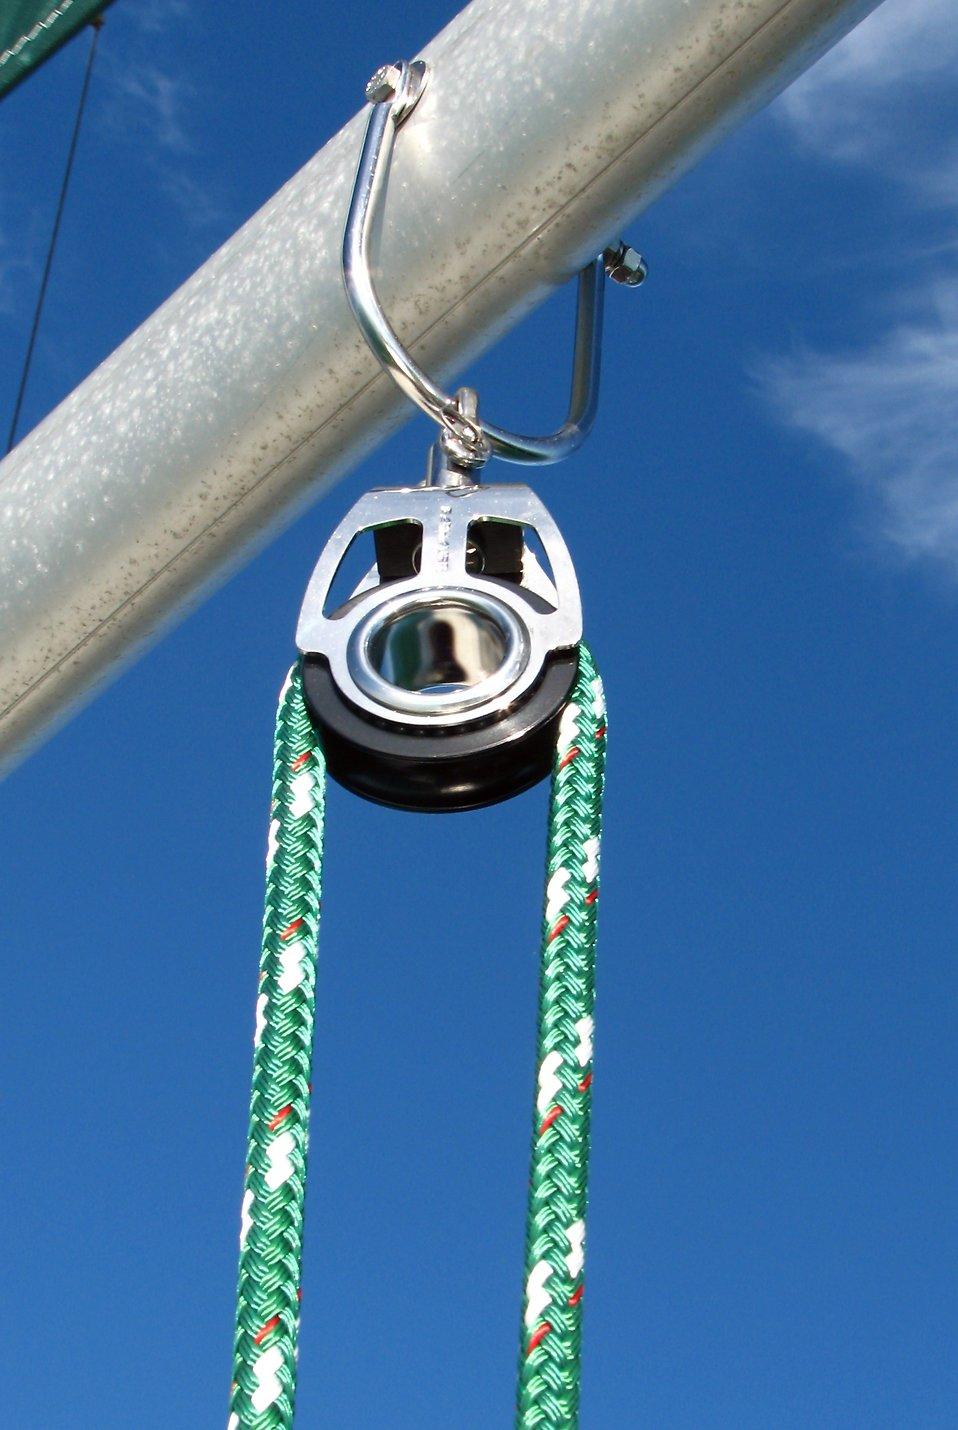 Close-up of lines in a pulley on a sailboat : Free Stock Photo